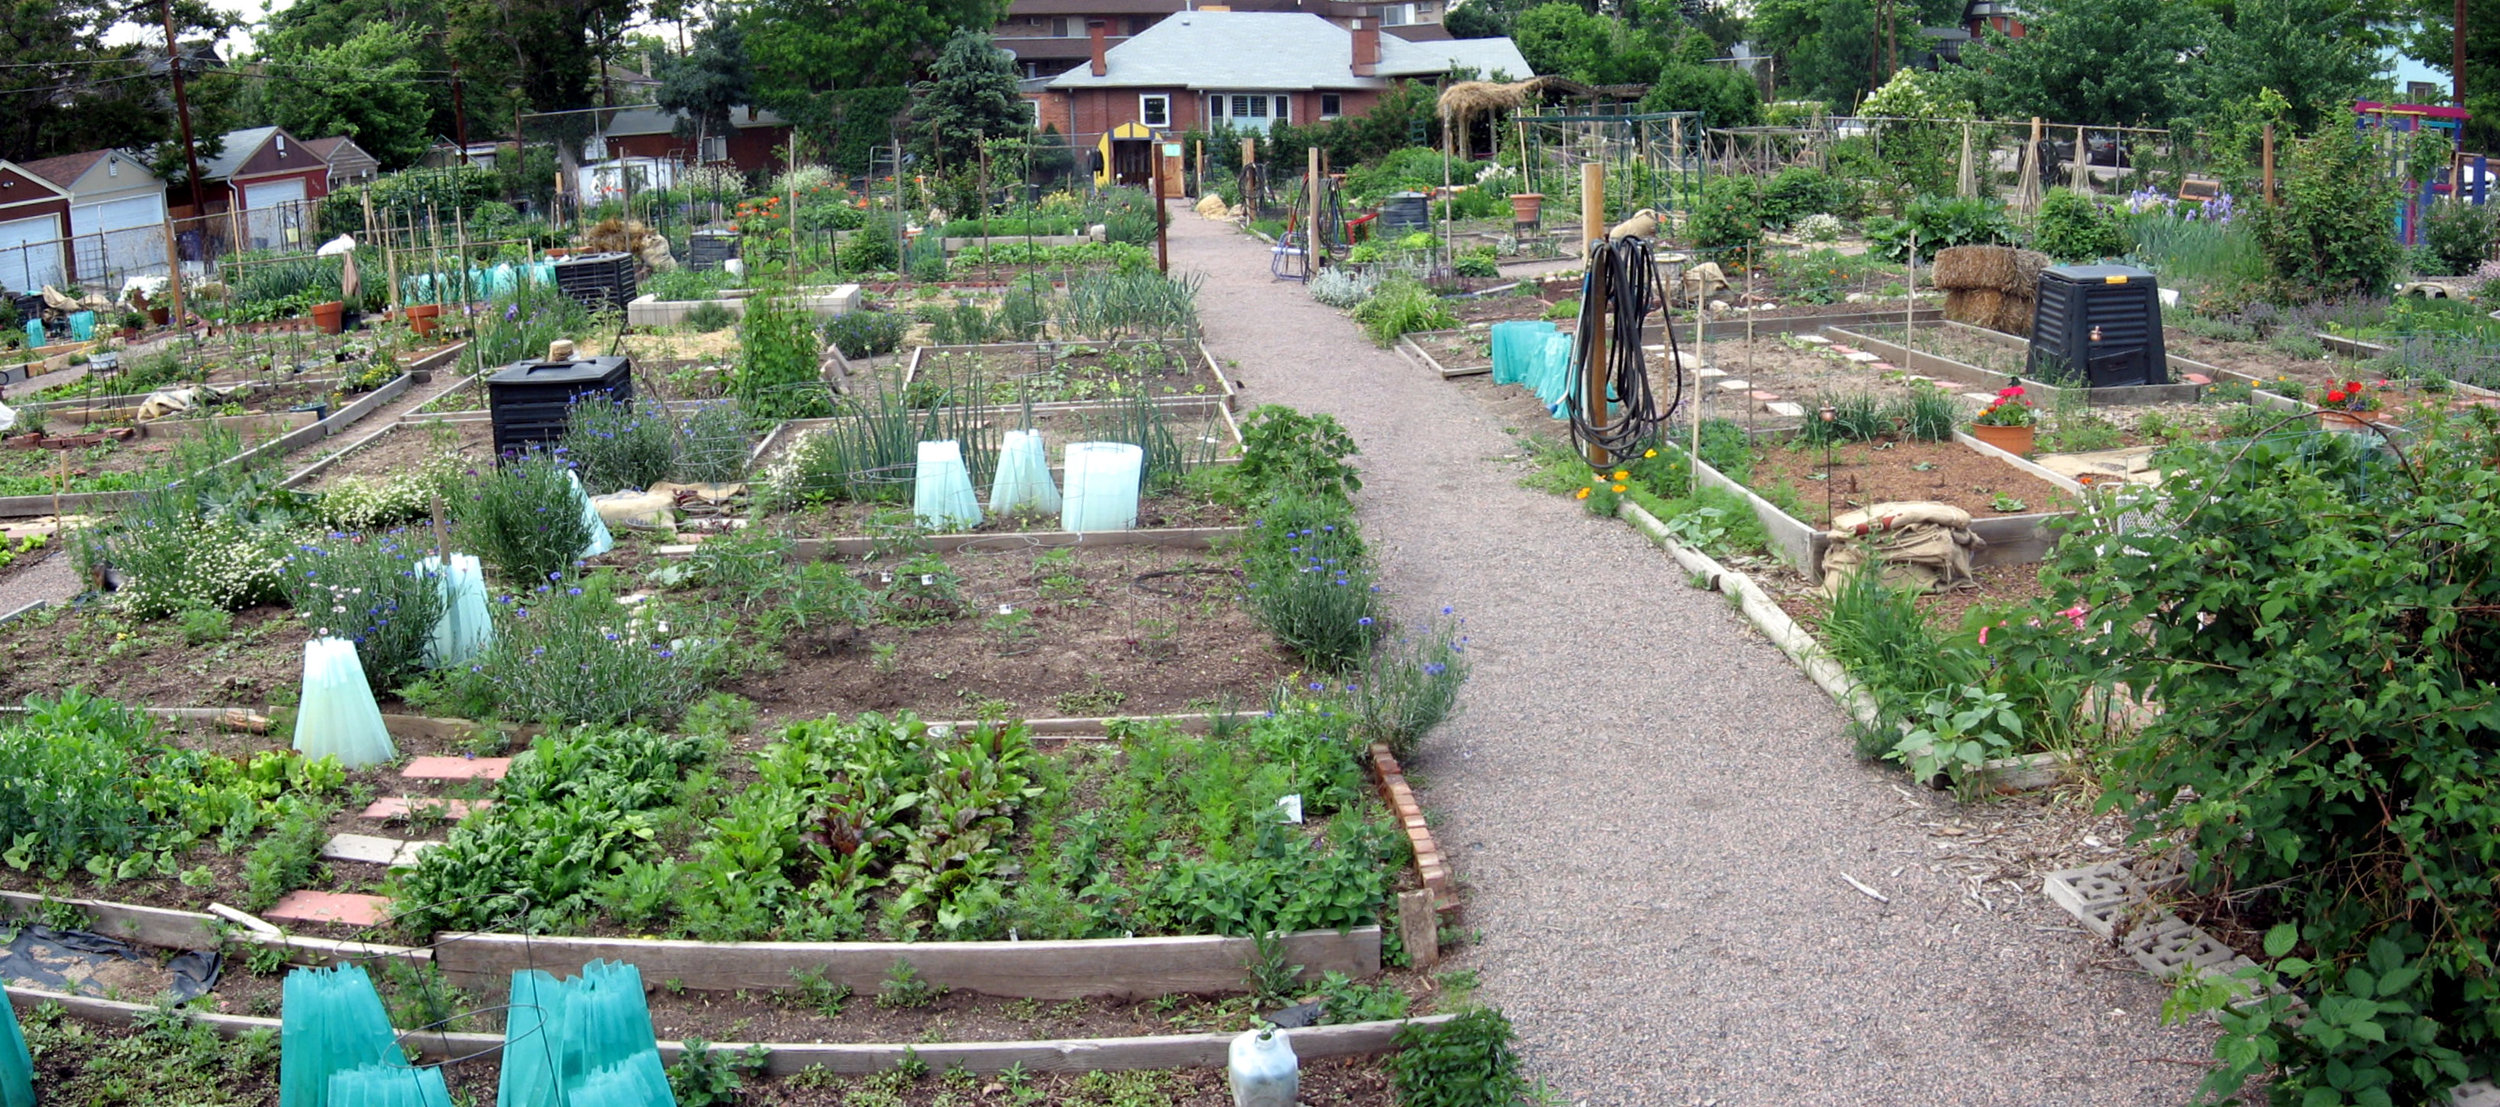 Many cities offer community gardens plots for citizens to use at little to no cost.  Photo Source.